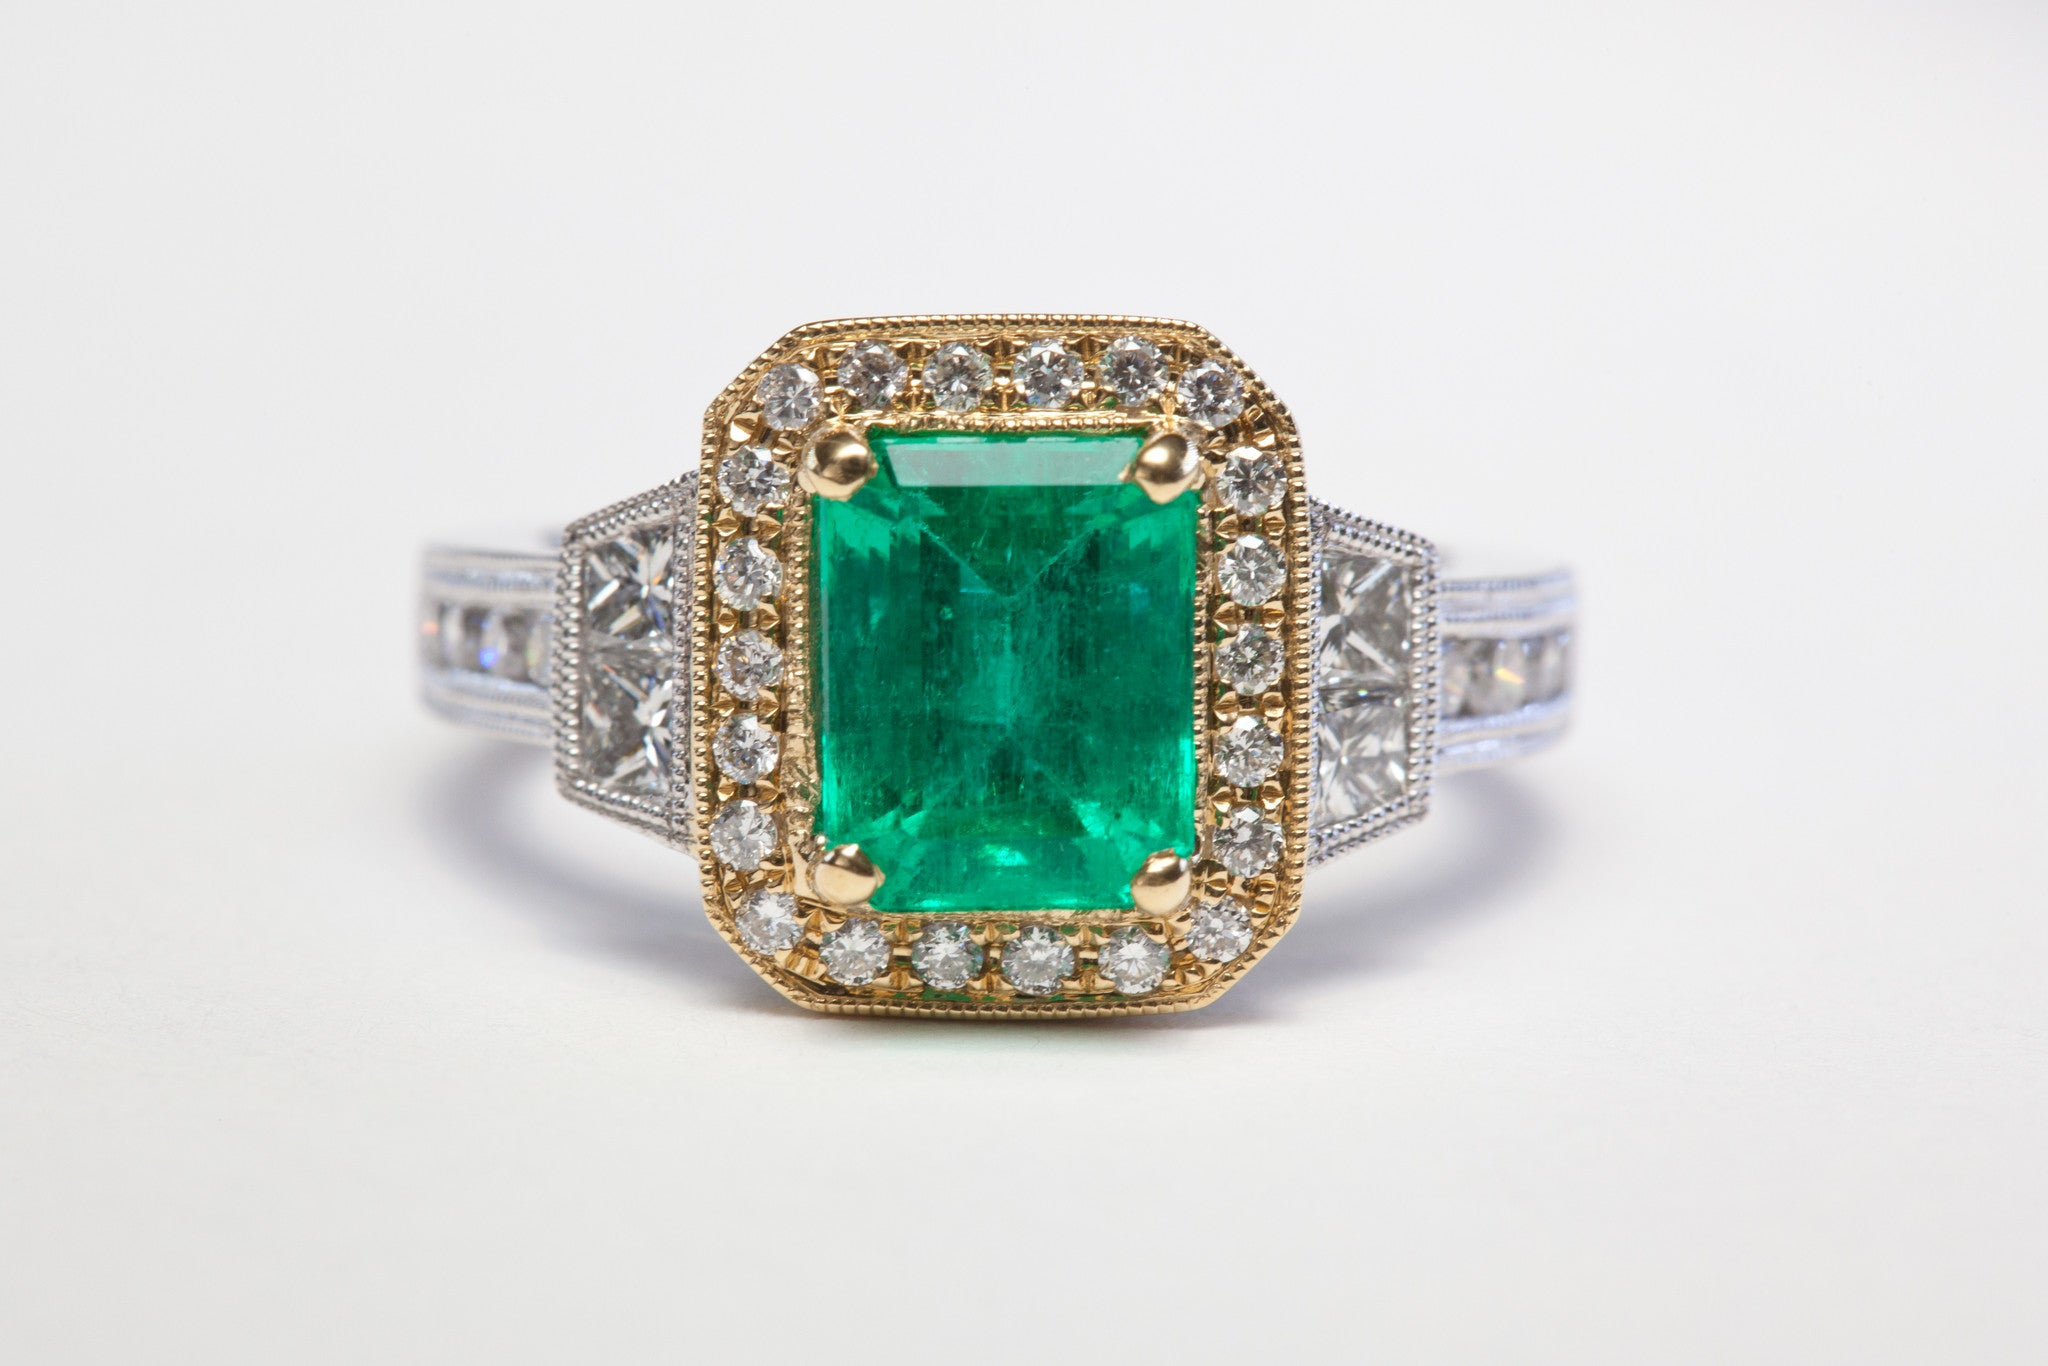 2 Carat Emerald ring with diamond accents in Platinum and 18 Karat